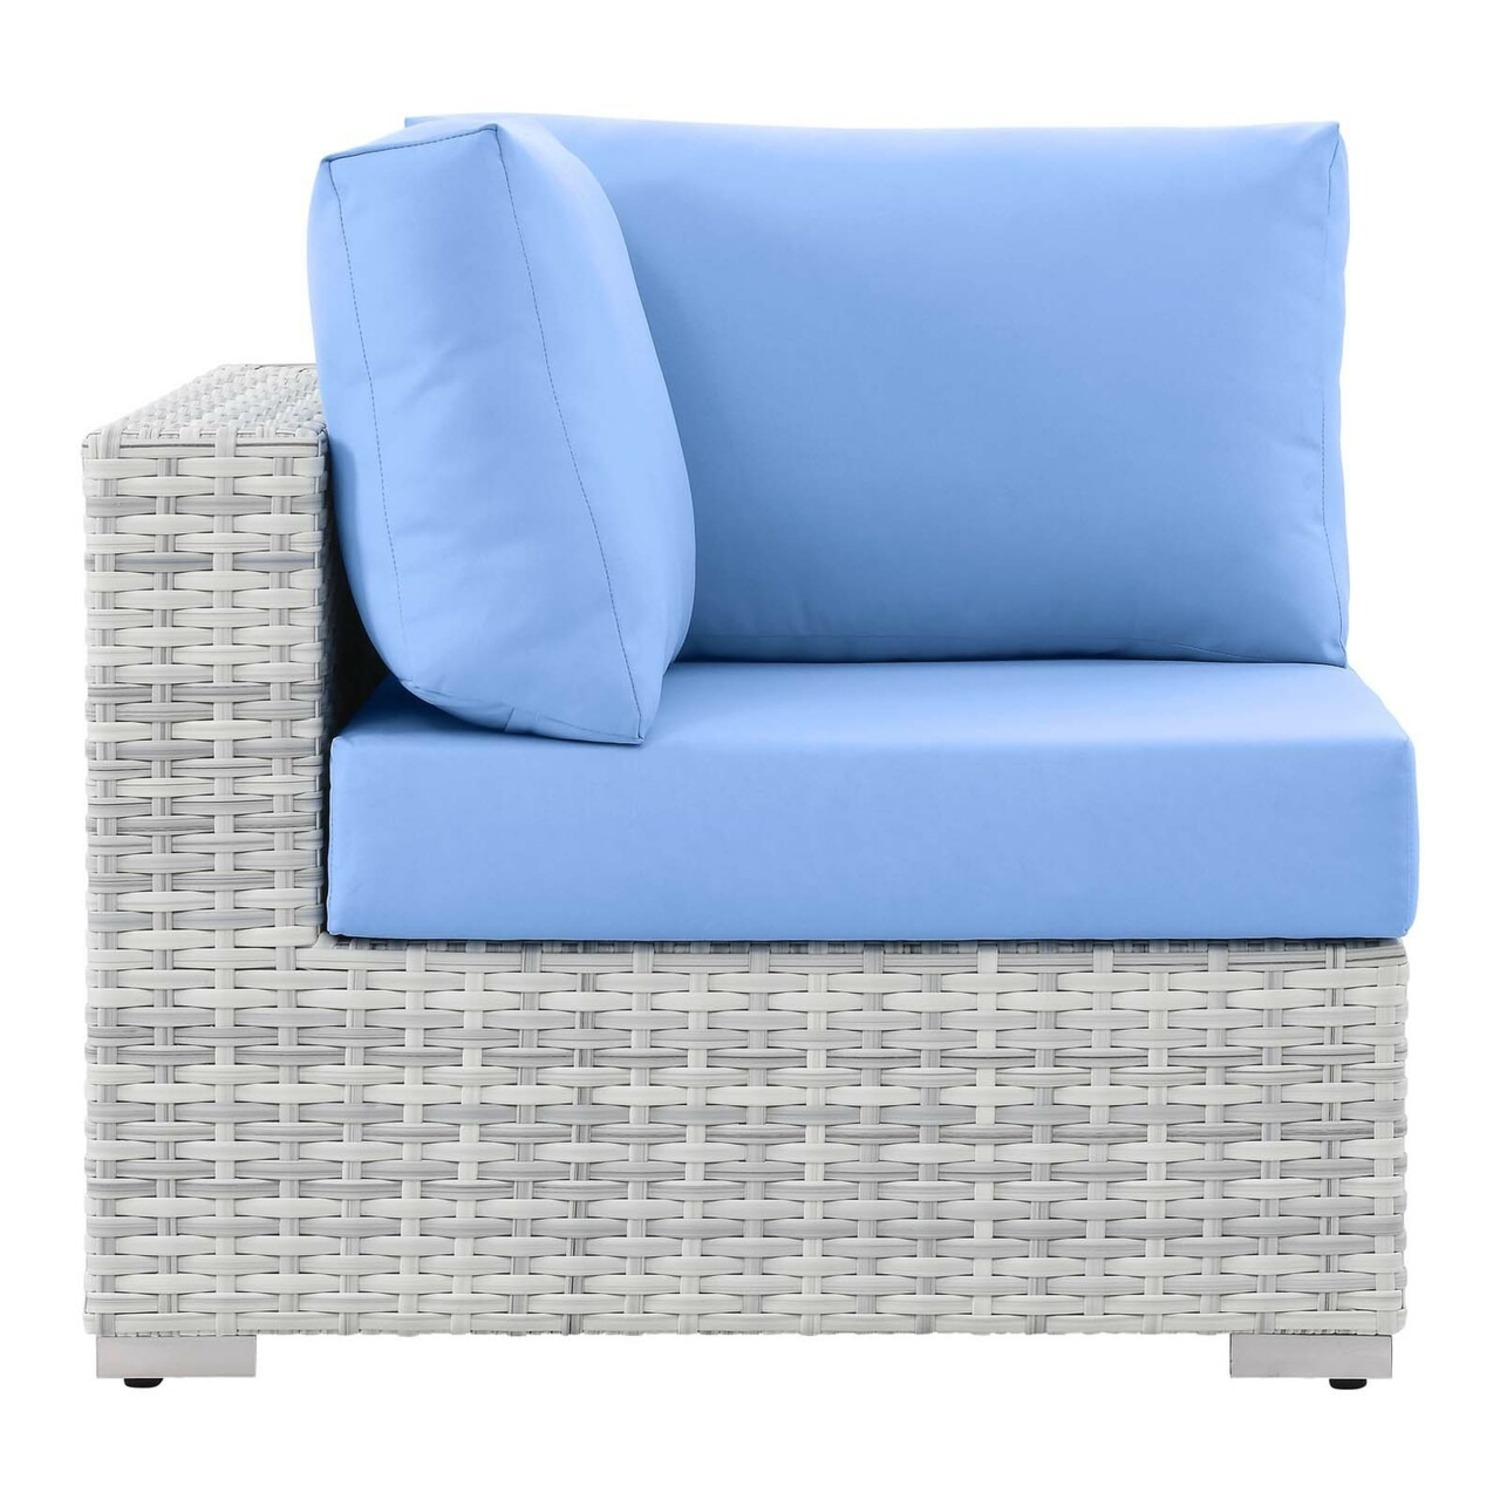 6-Piece Outdoor Patio Sectional In Light Blue Seat - image-10